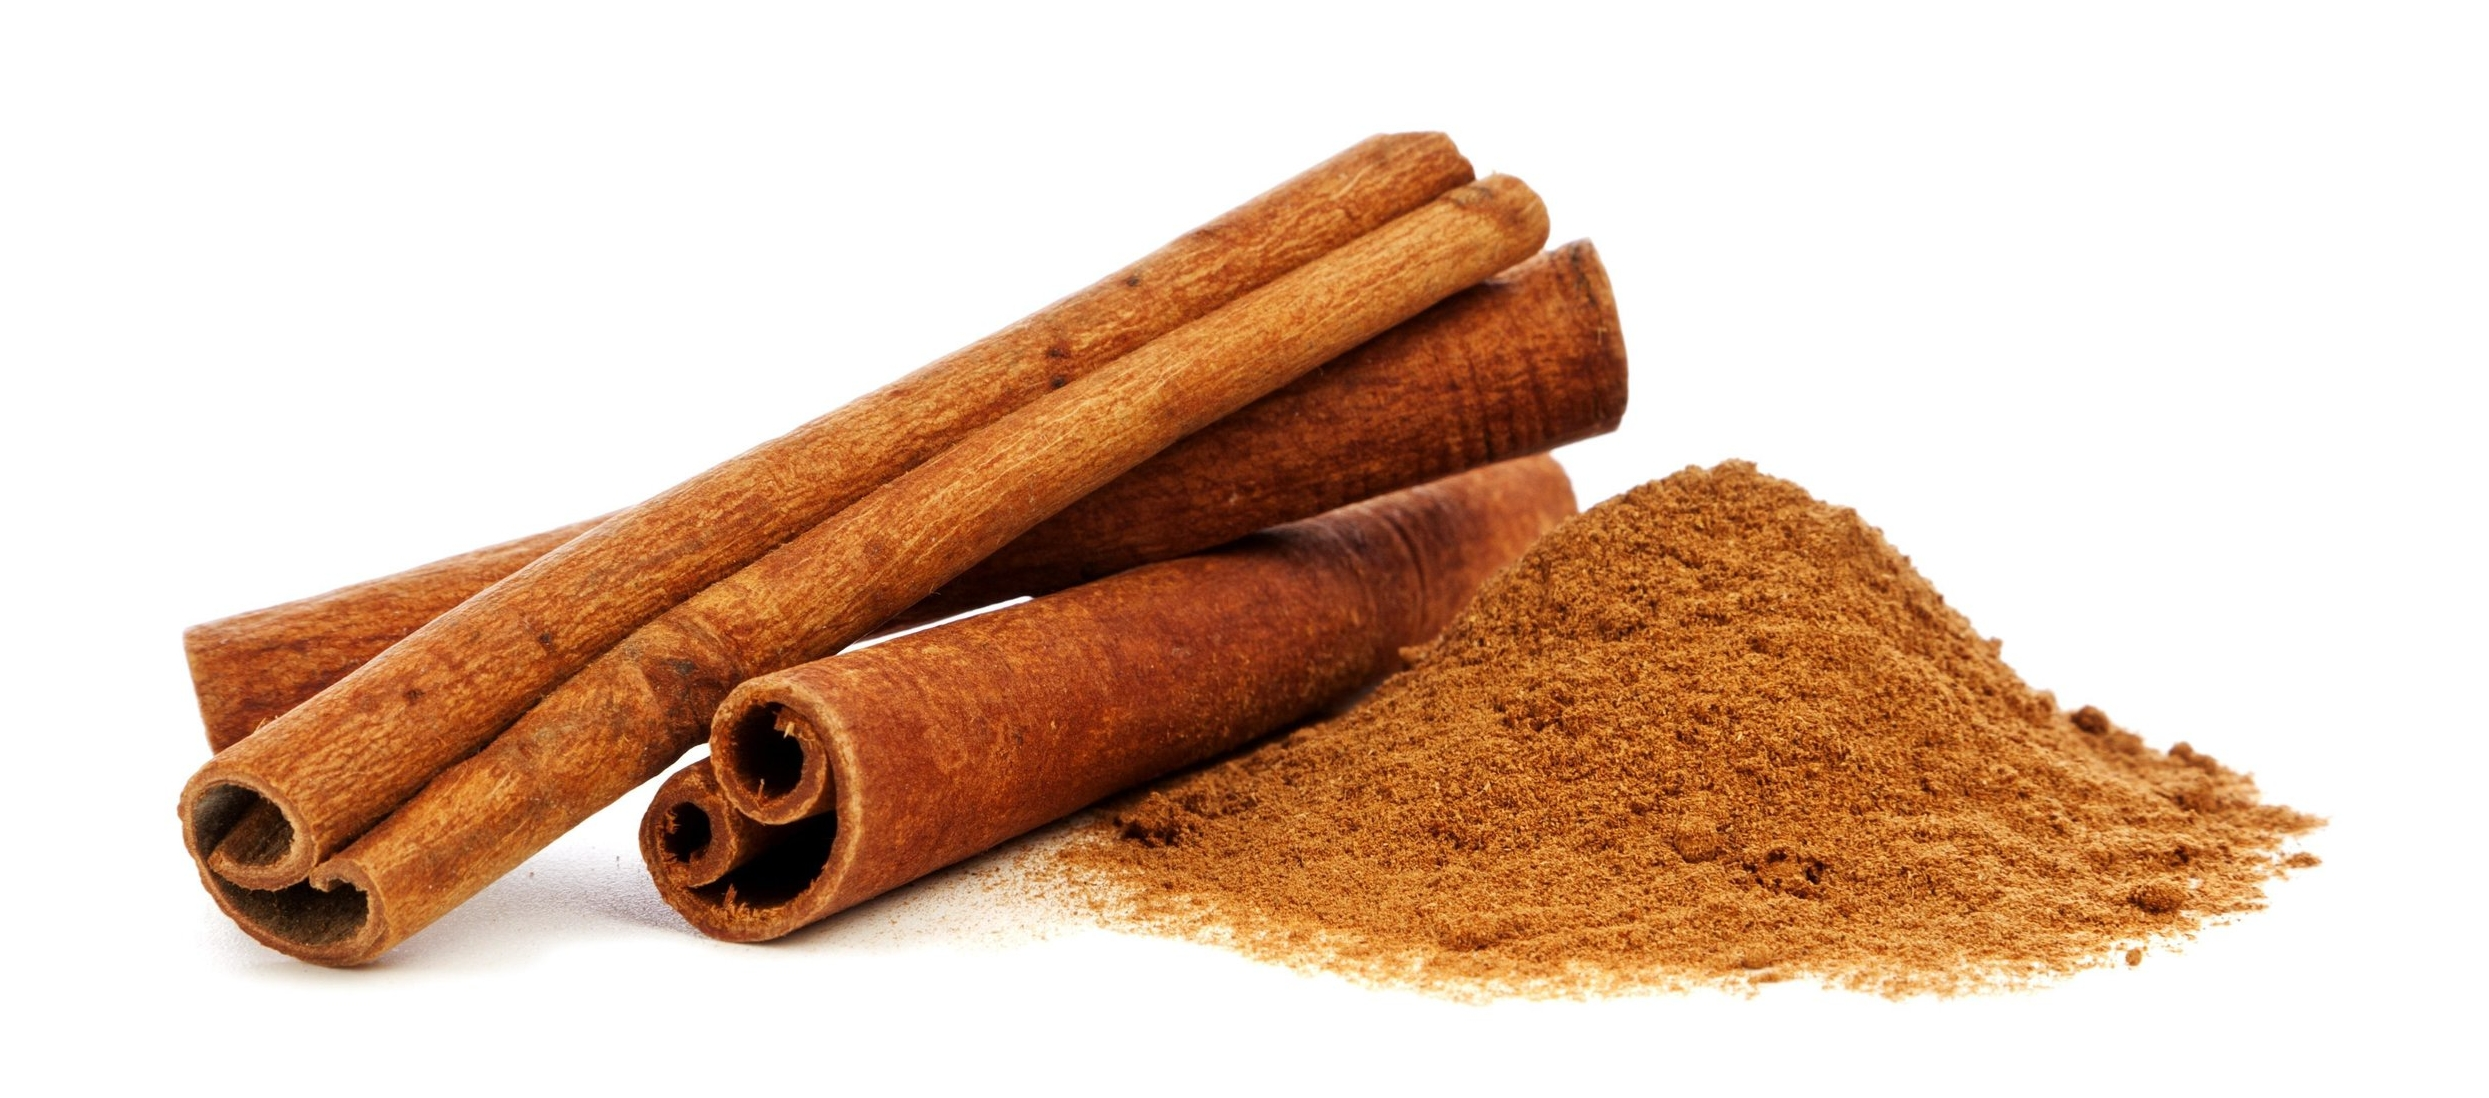 definitions-nutritionchallenge-cinnamon